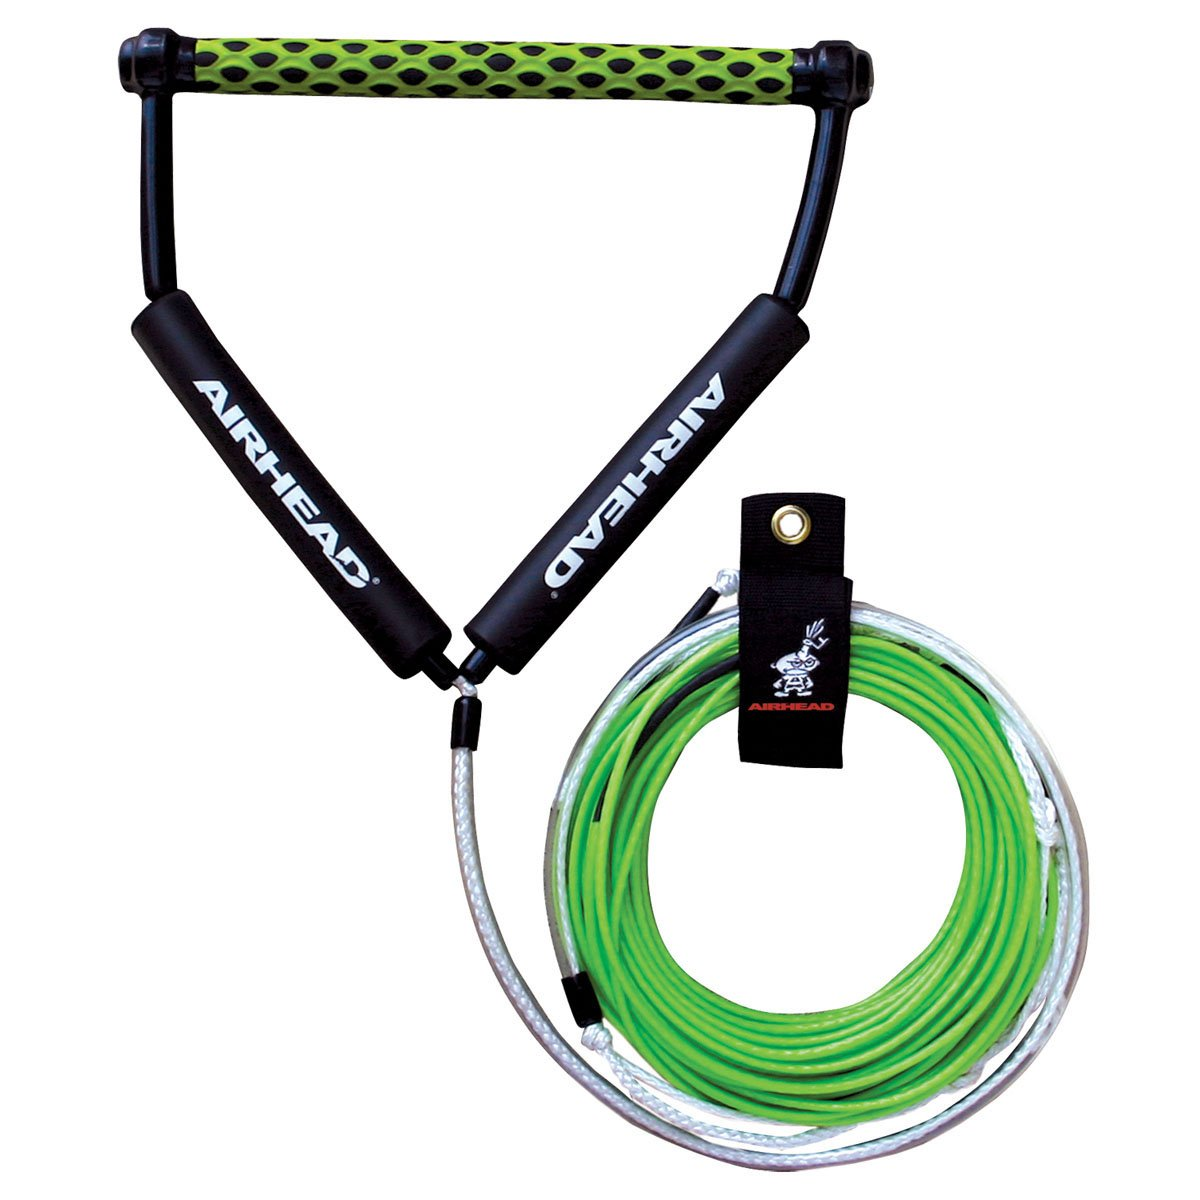 Airhead Spectra Wakeboard thermique corde